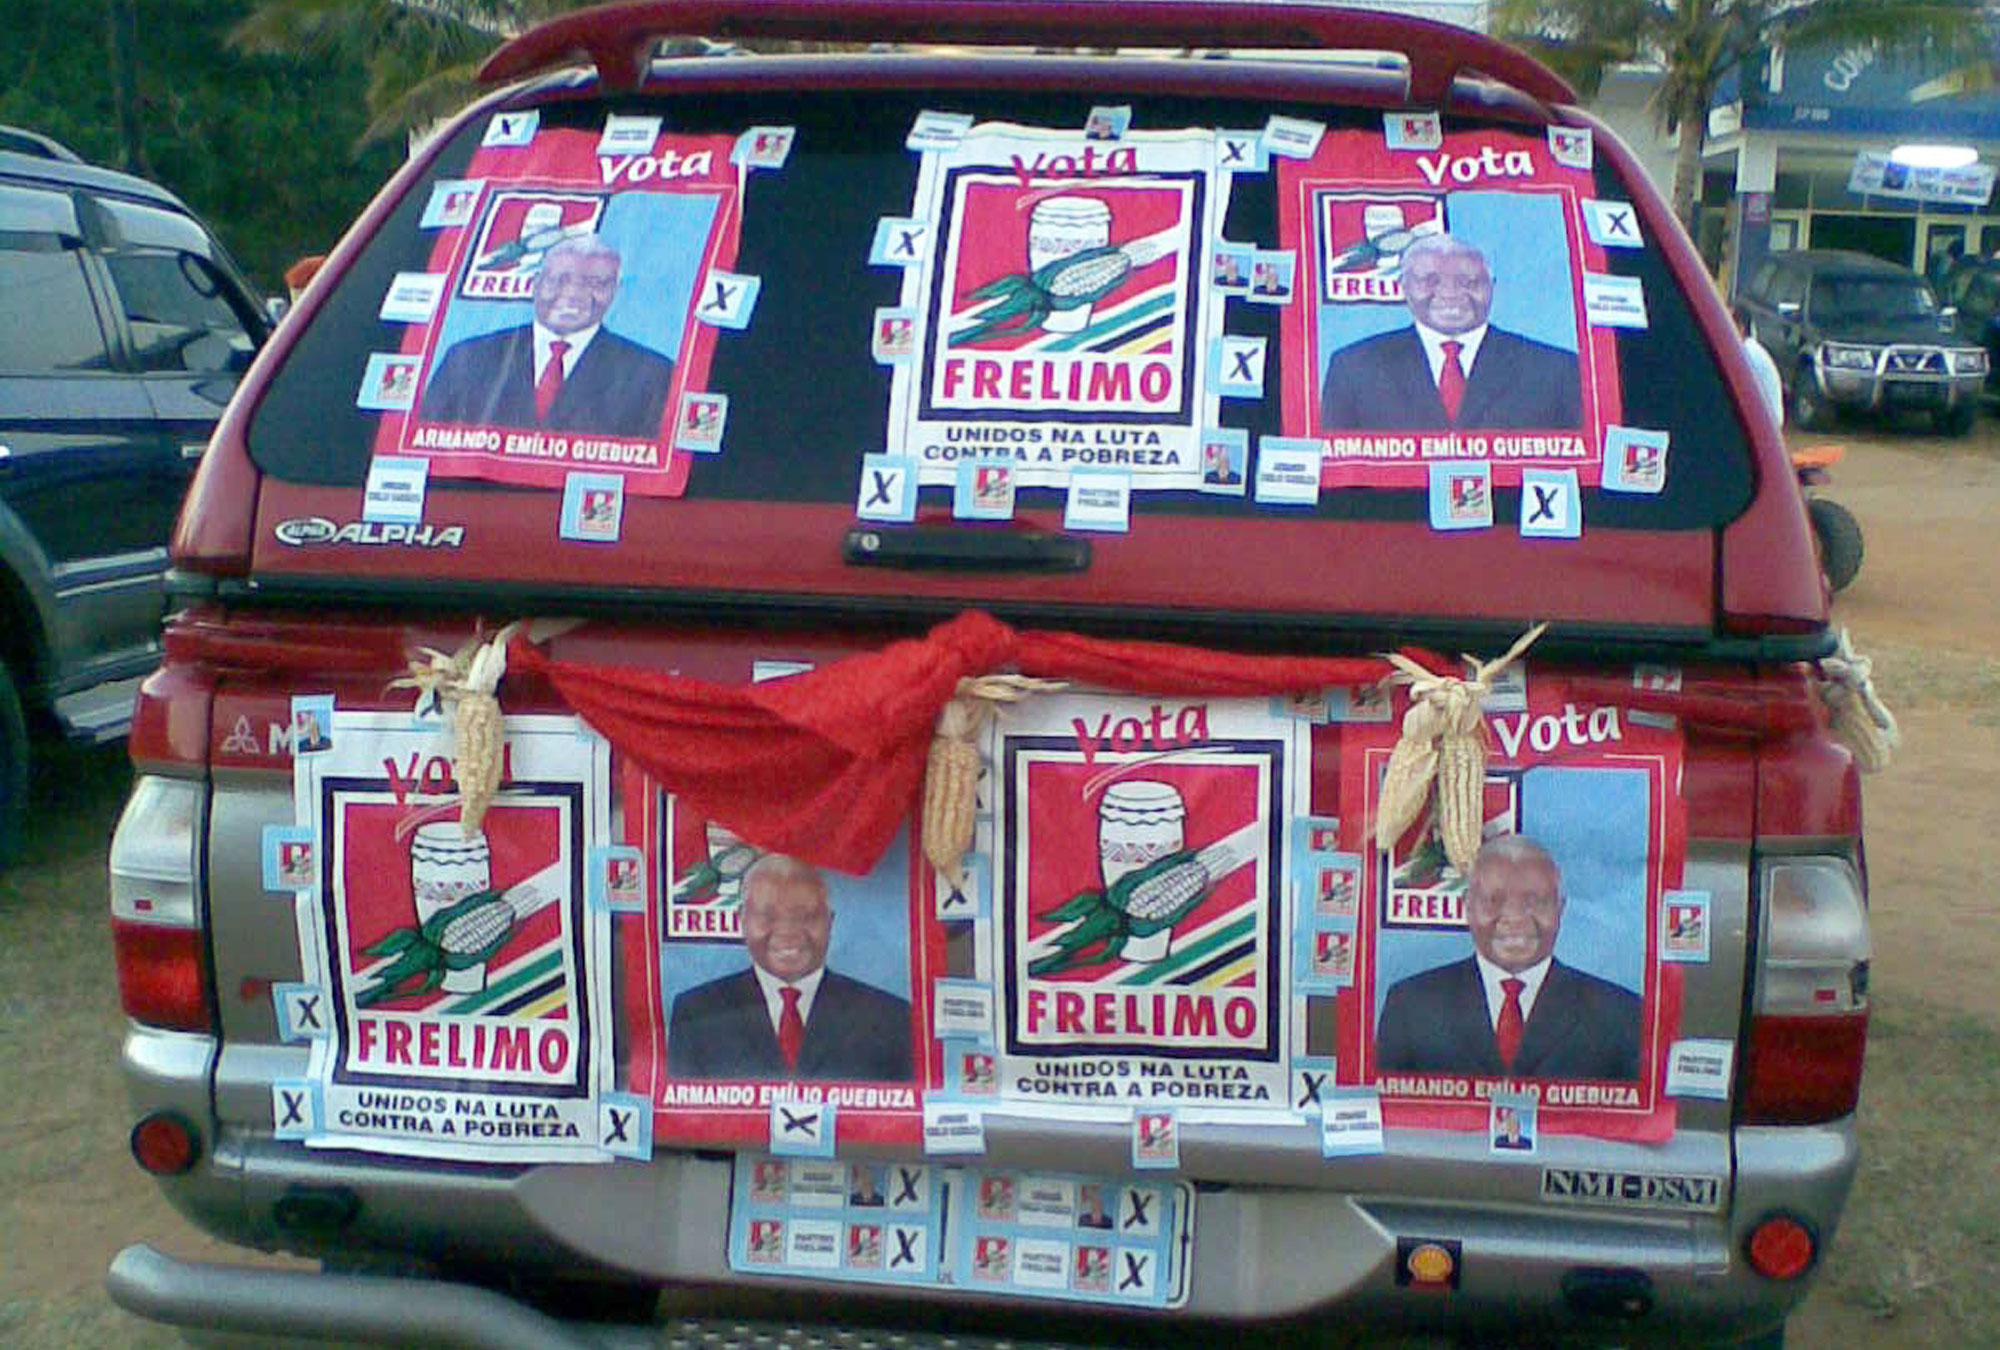 Red car with campaign posters supporting FRELIMO party